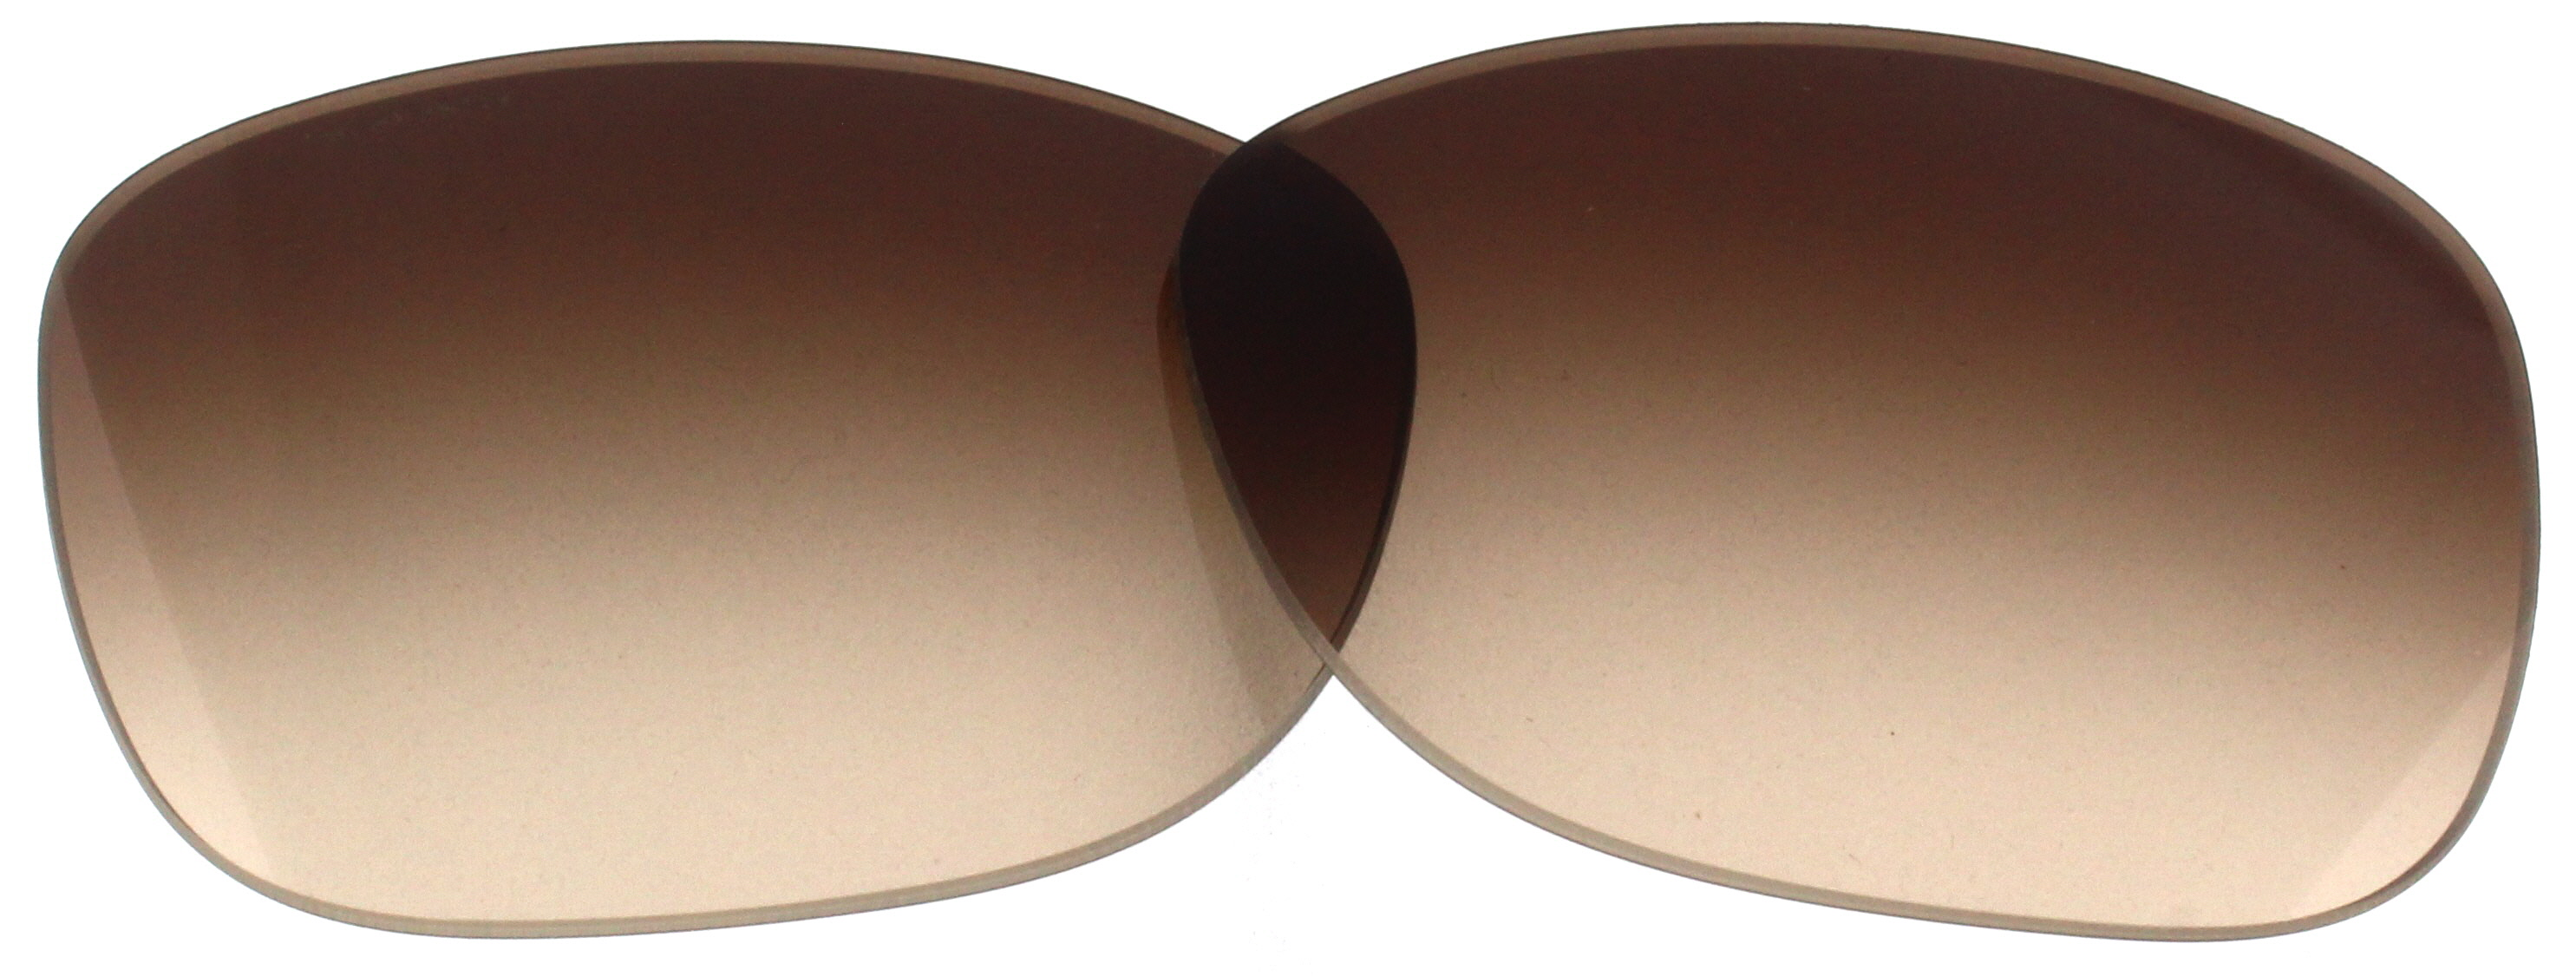 4a431a3979 Image is loading VERSACE-Replacement-Lenses-VE4293B-Brown-Gradient-57MM